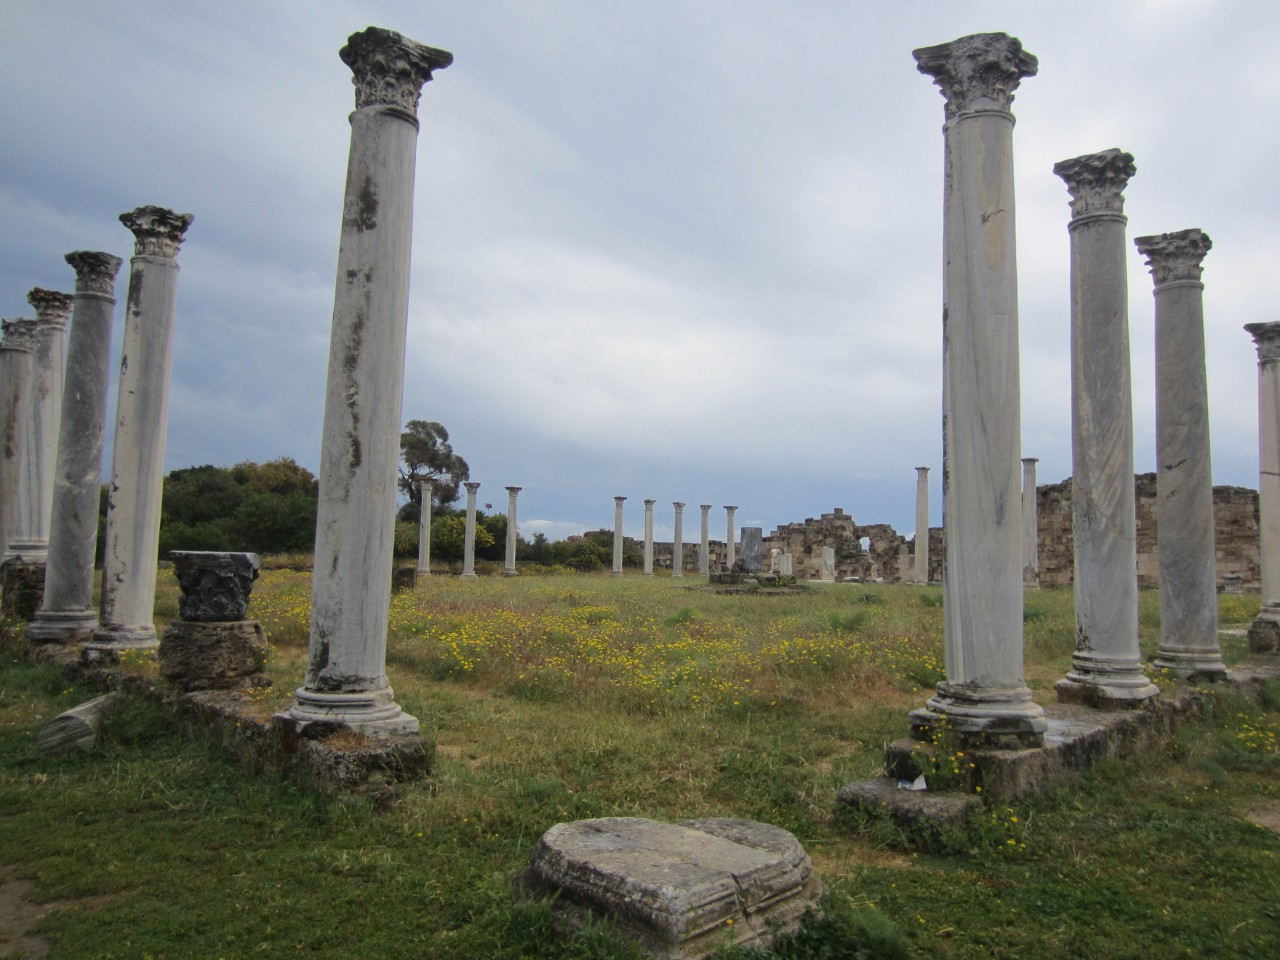 The ruins of the city of Salamis